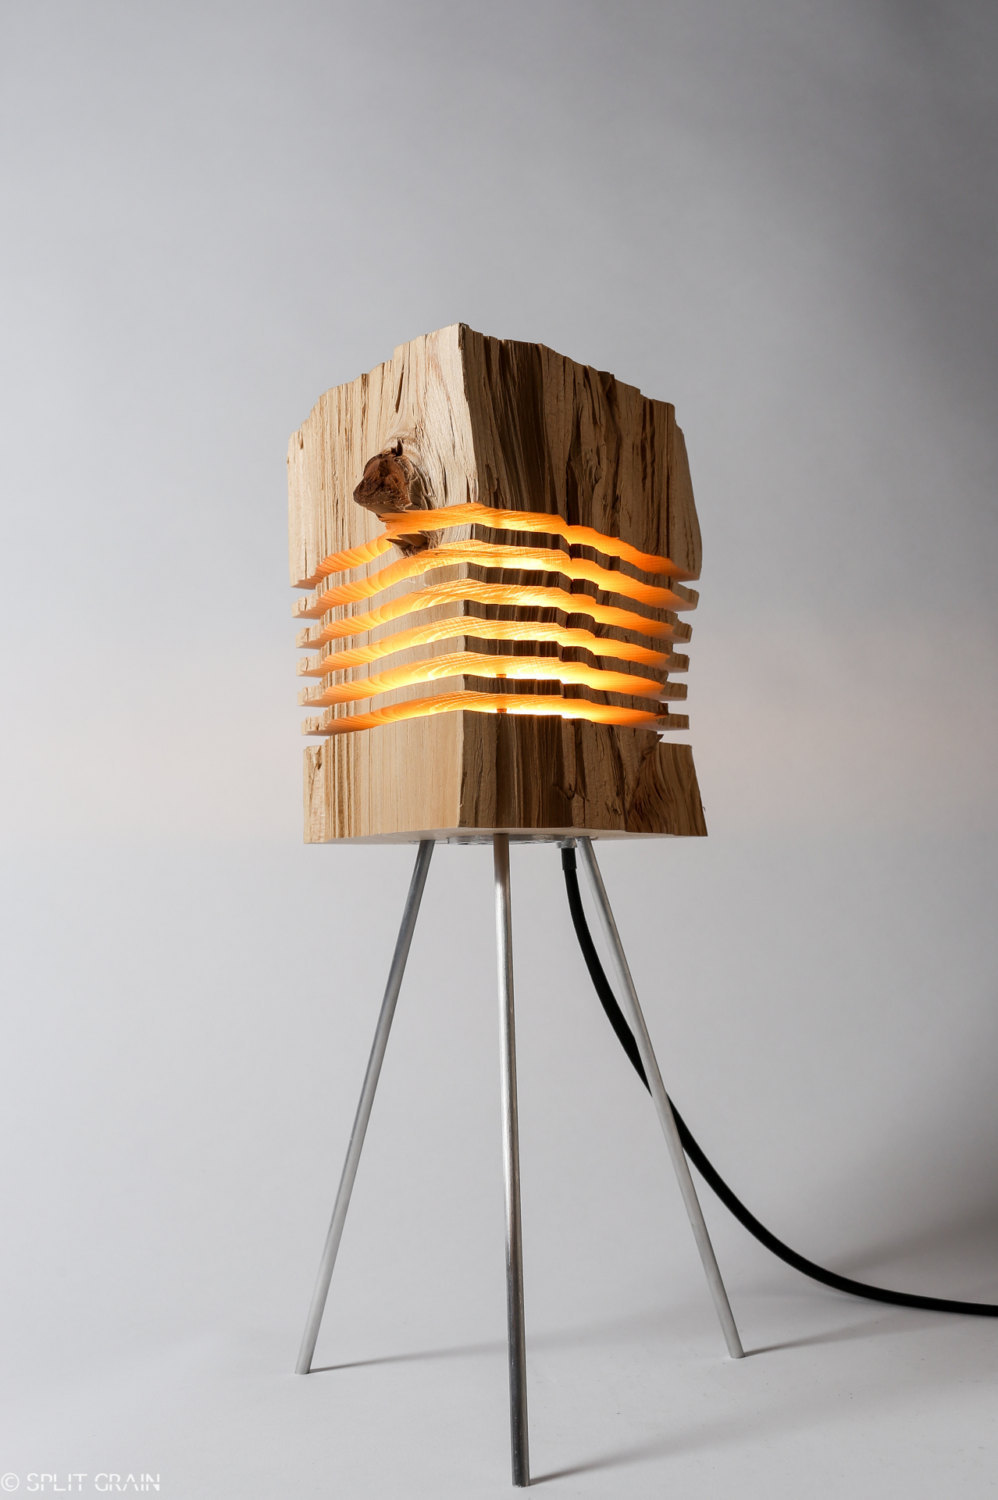 Minimalist And Sculptural Sliced Wood Lamps By Split Grain 3